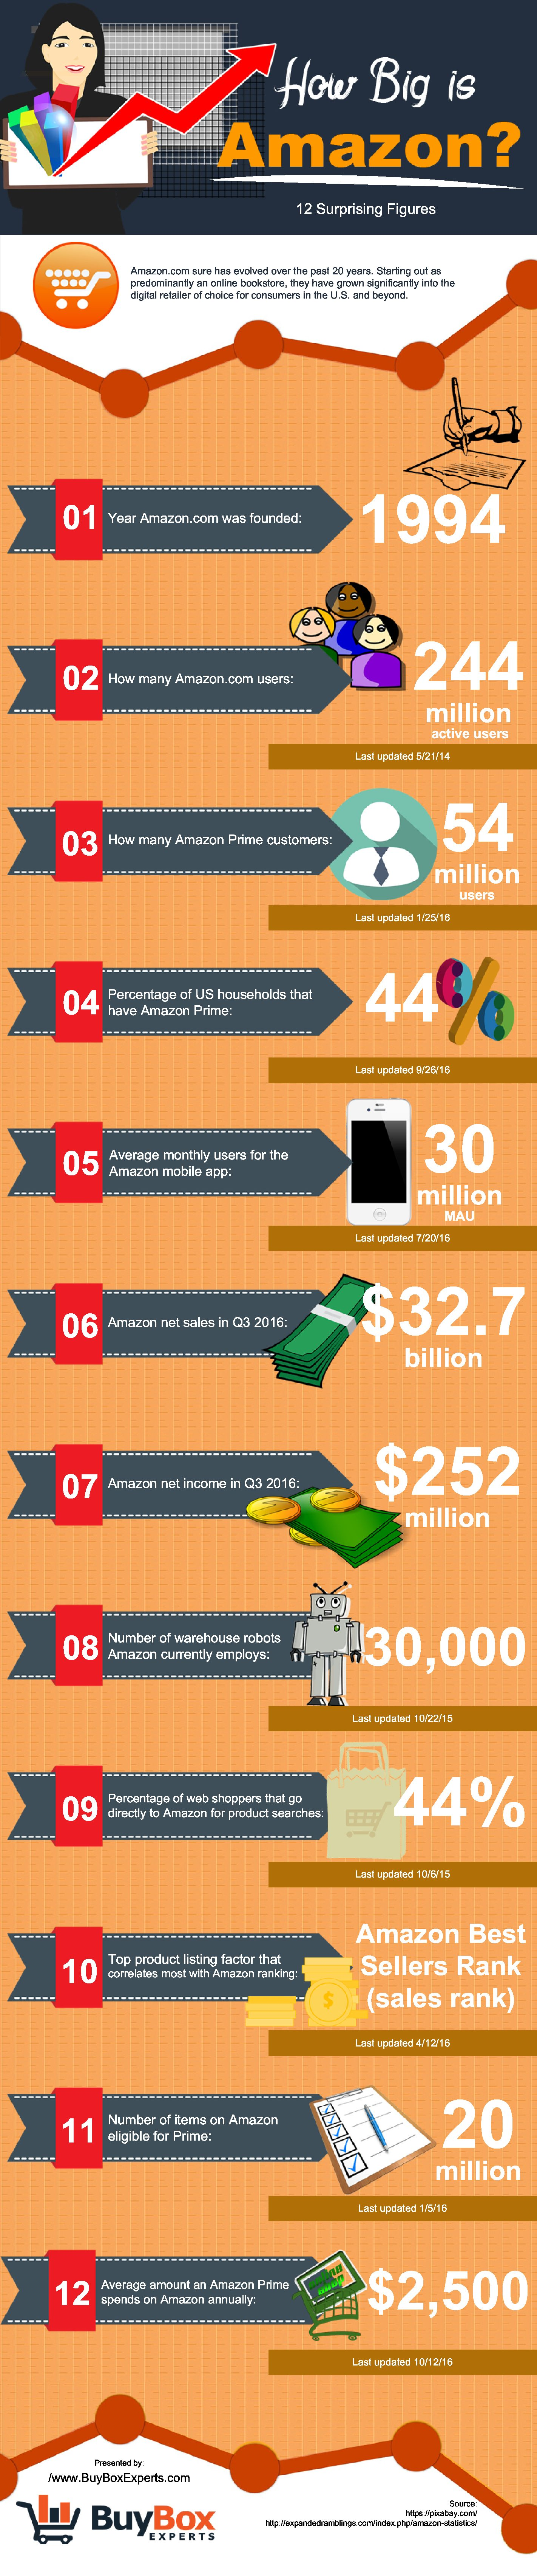 You Won't Believe How Much Amazon Has Grown! - Infographic